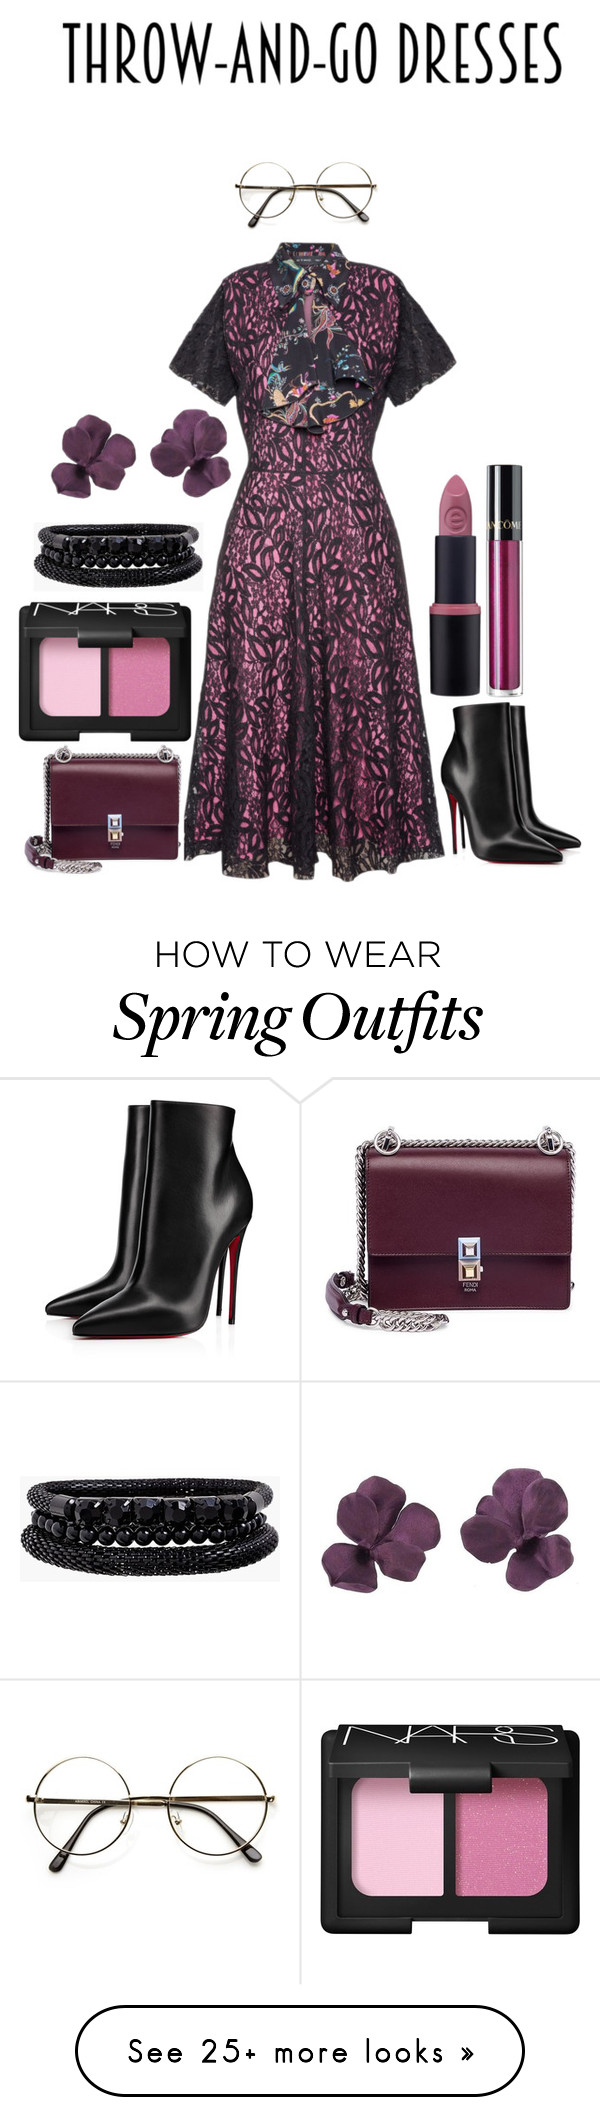 """""""Dress up Girl!"""" by mrudula-26 on Polyvore featuring Christian Louboutin, Fendi, Lancôme, NARS Cosmetics and Spring Street"""